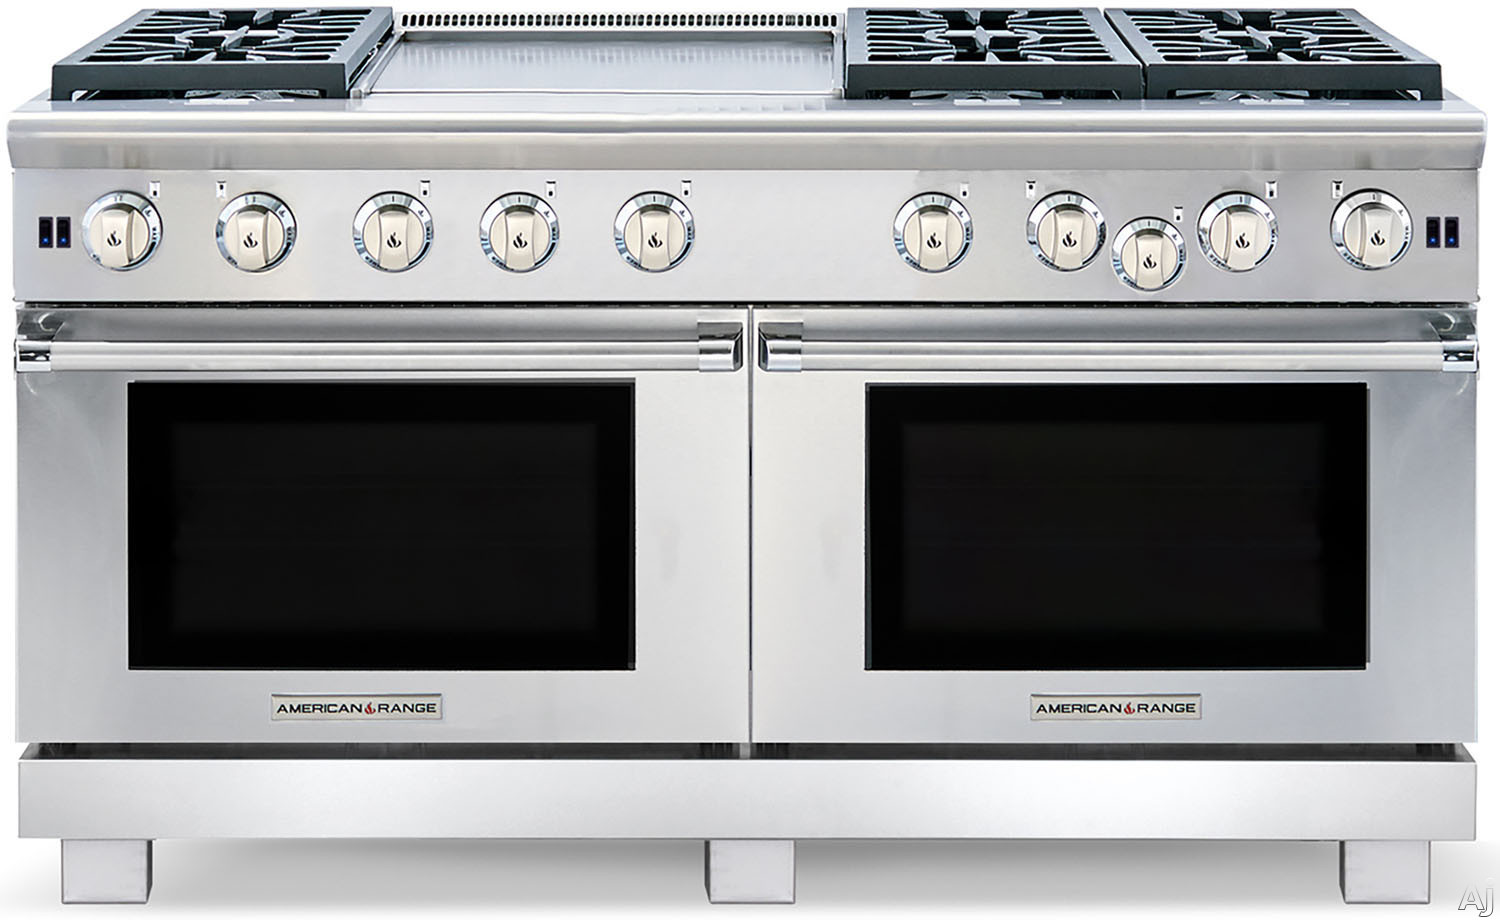 American Range Performer Series ARROB6602GD 60 Inch Pro-Style Gas Range with 6 Open Burners, 4.3 cu. ft. Manual Clean Ovens, Innovection Convection System, 1,800-¦F Ceramic Infrared Broiler and 22